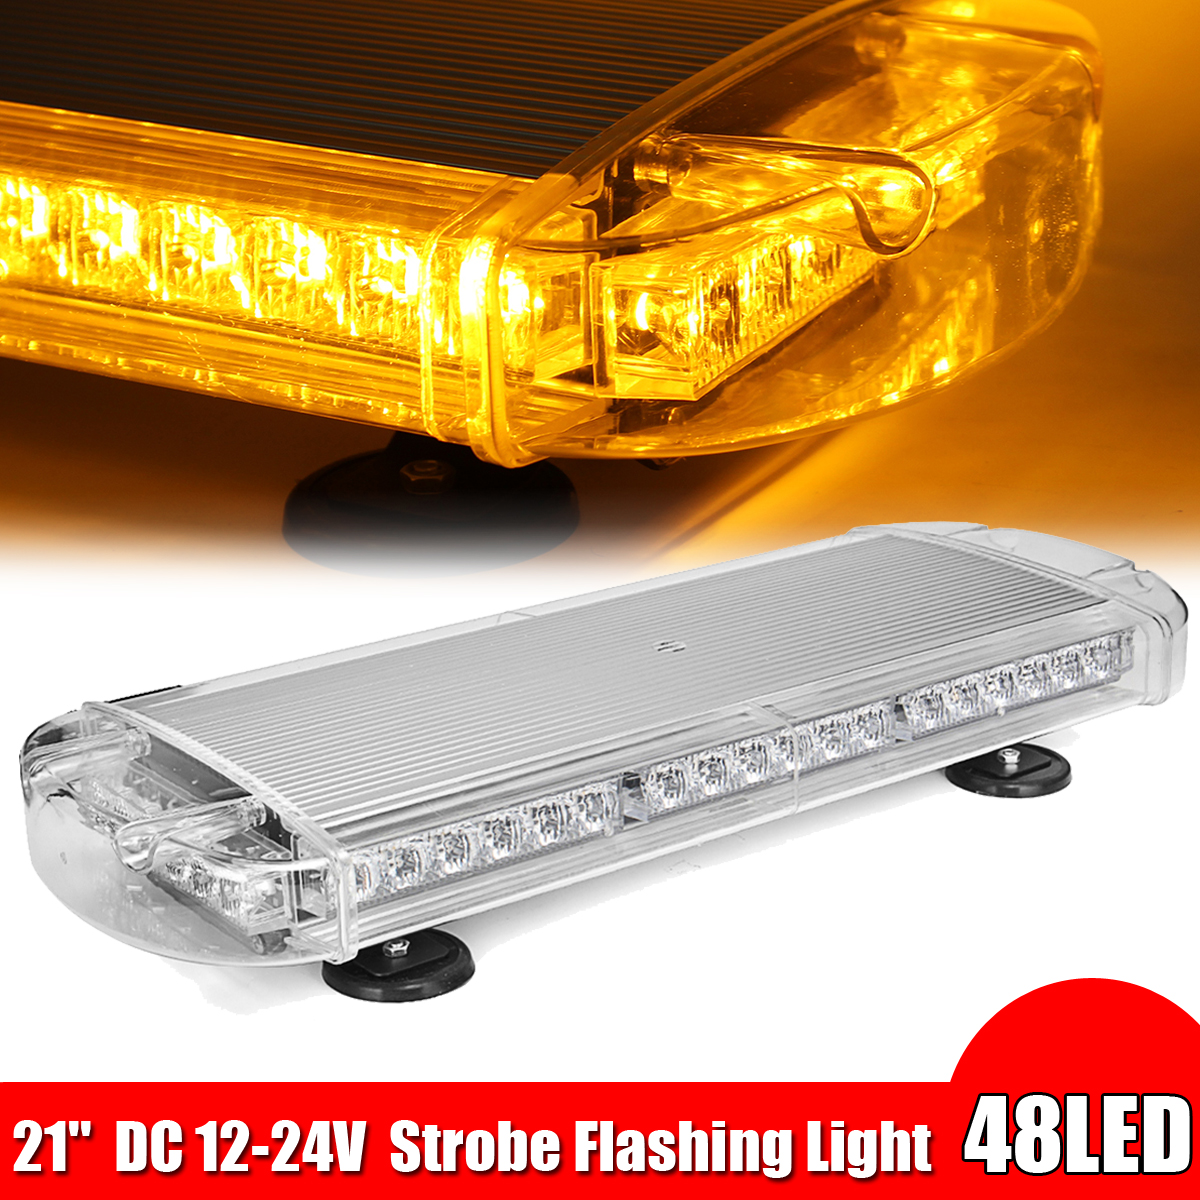 Mofaner 21 48 LED Car Emergency Warning Light Security Roof Flashing Bar Strobe Amber Universal for BMW for ToyotaMofaner 21 48 LED Car Emergency Warning Light Security Roof Flashing Bar Strobe Amber Universal for BMW for Toyota